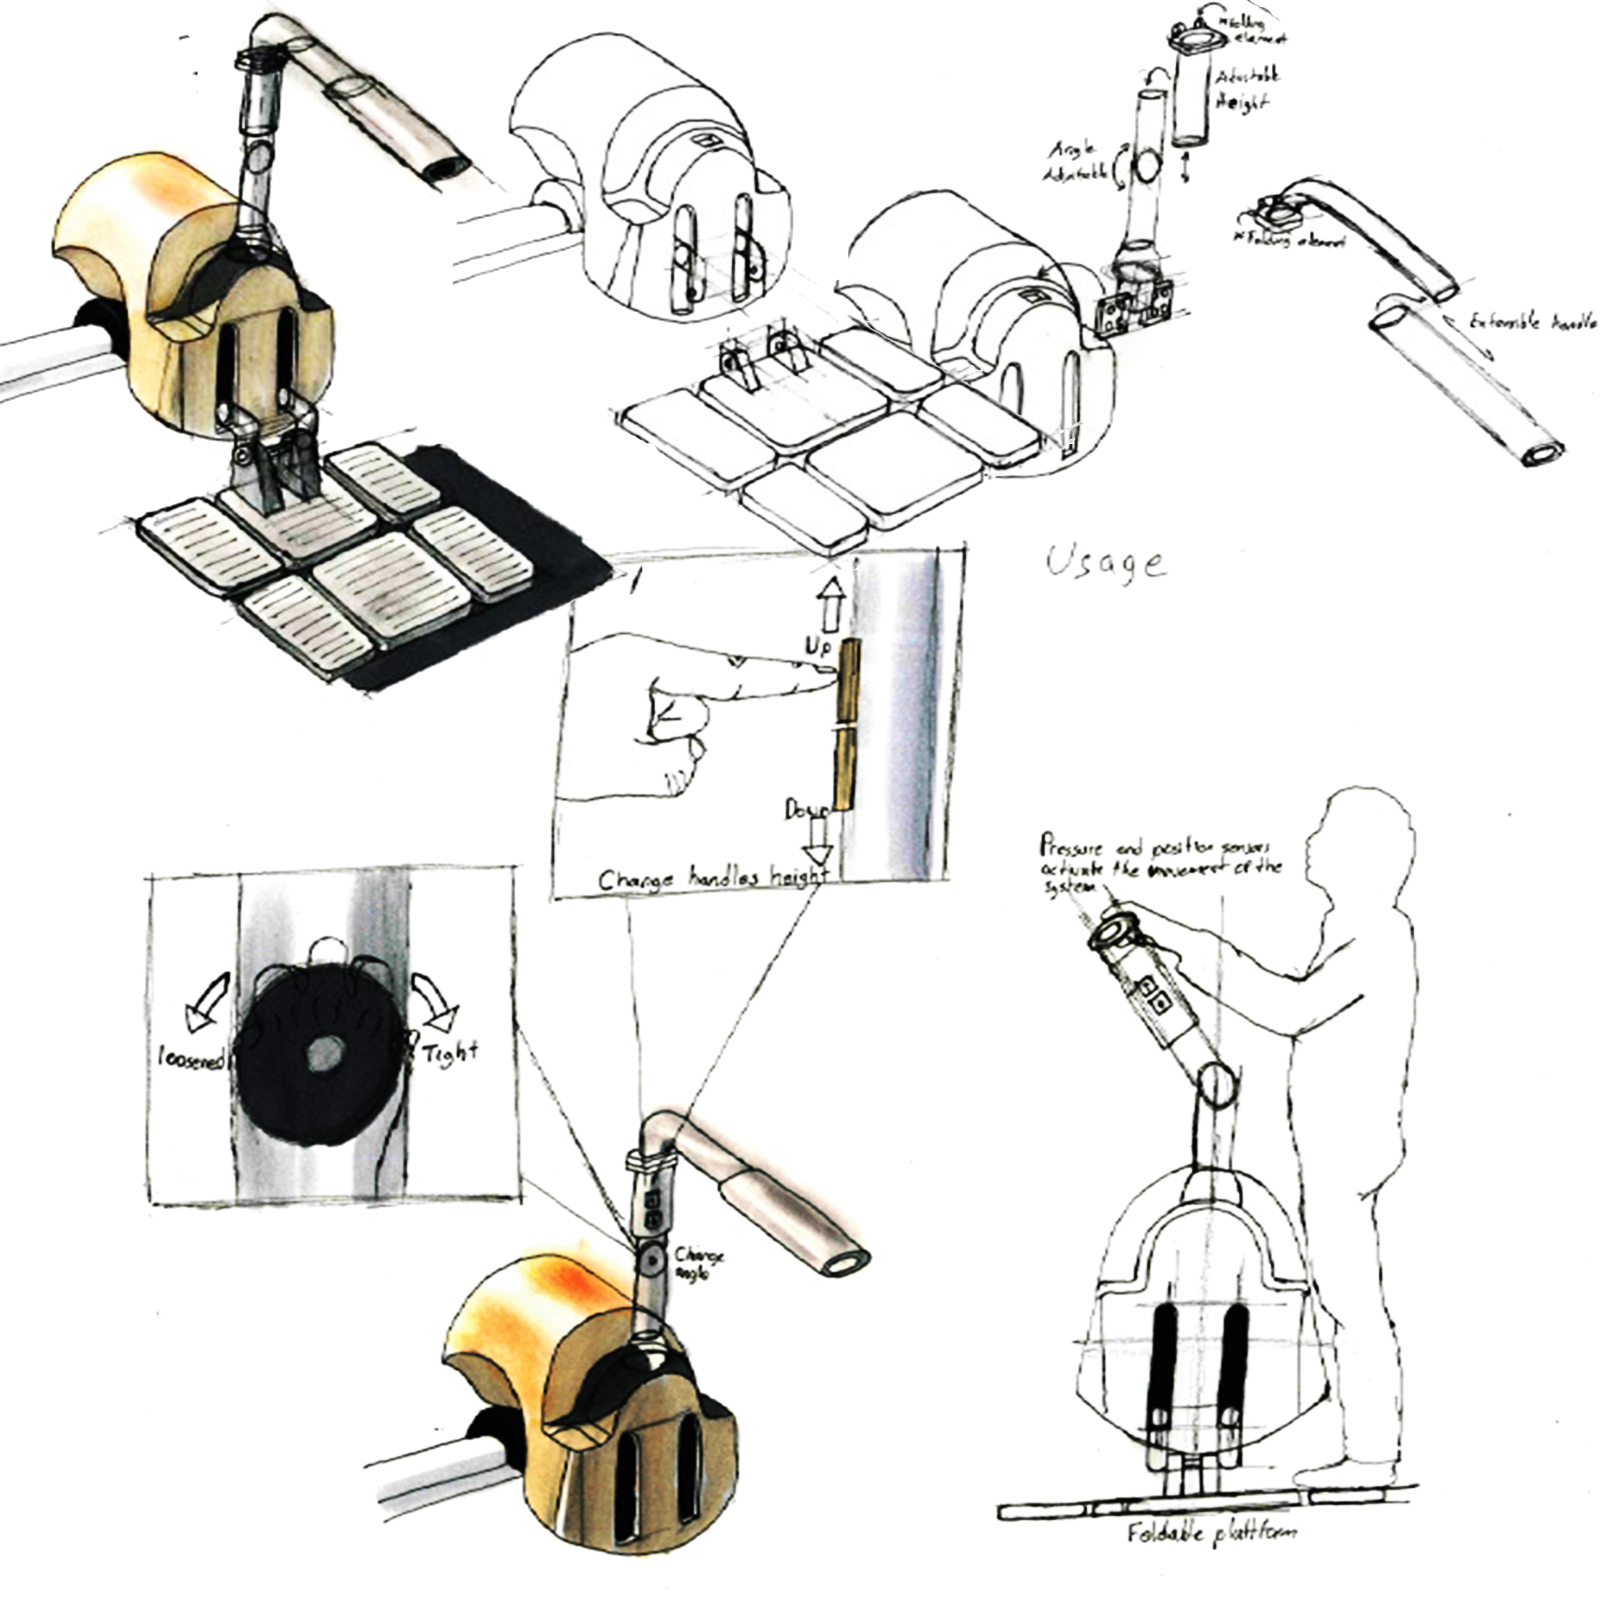 Invention Drawings Sacamento inventors forumsacramento inventors group stair lift design